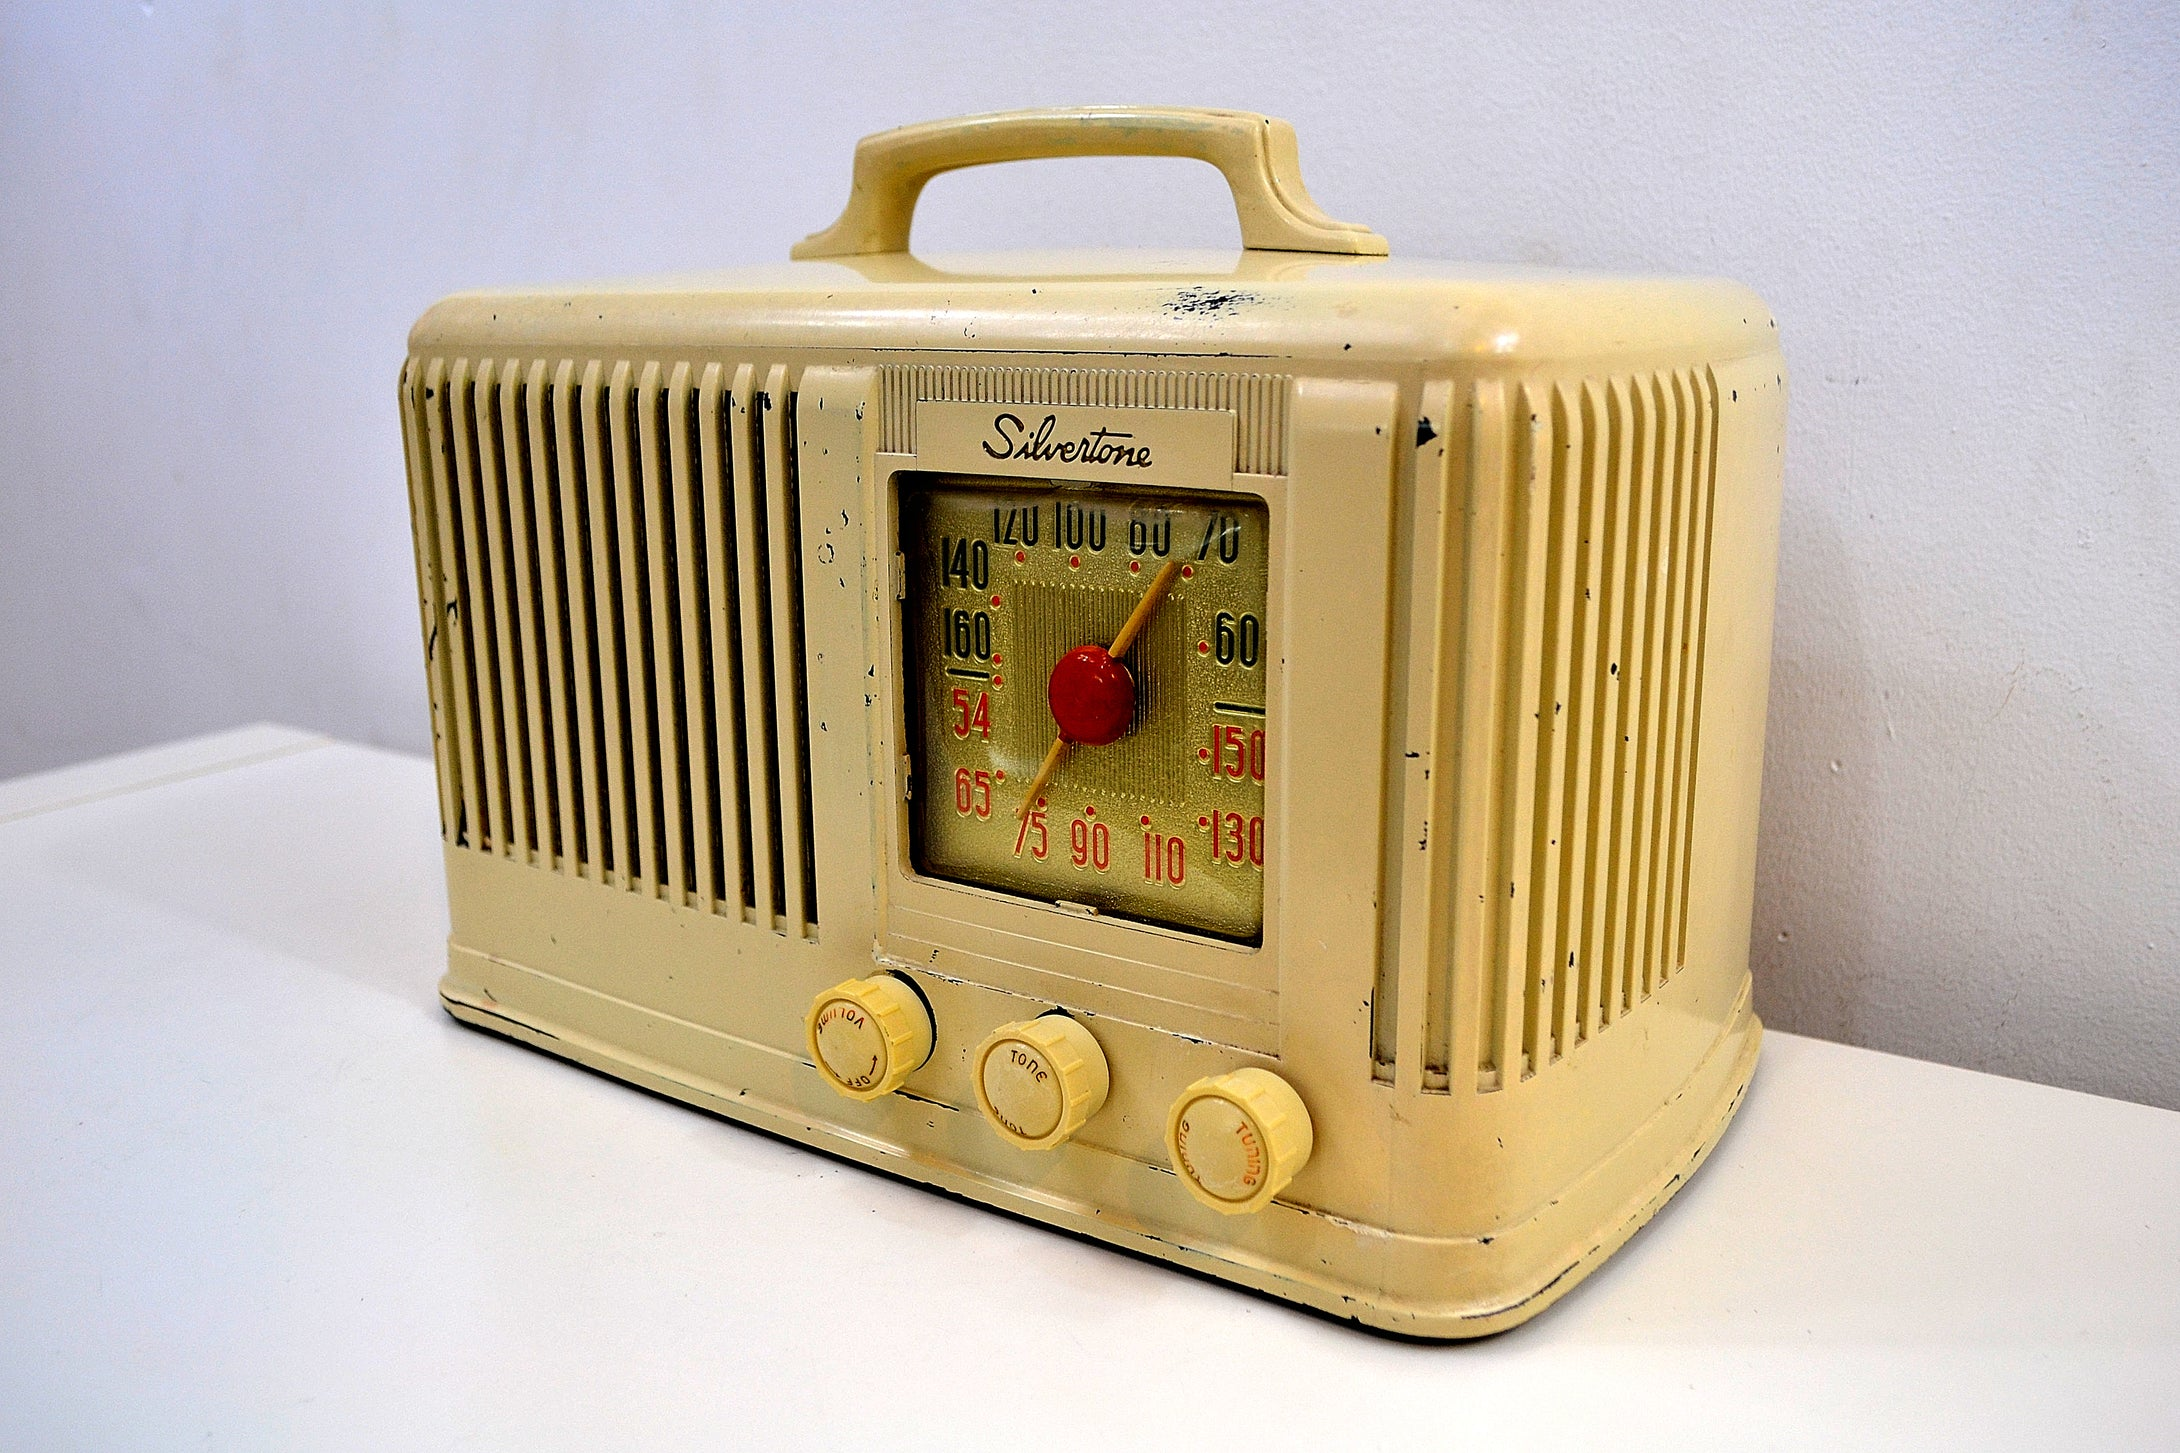 Ivory Cream Silvertone 1947 Model 6016 AM Tube Bakelite Radio Plays Like A Champ!